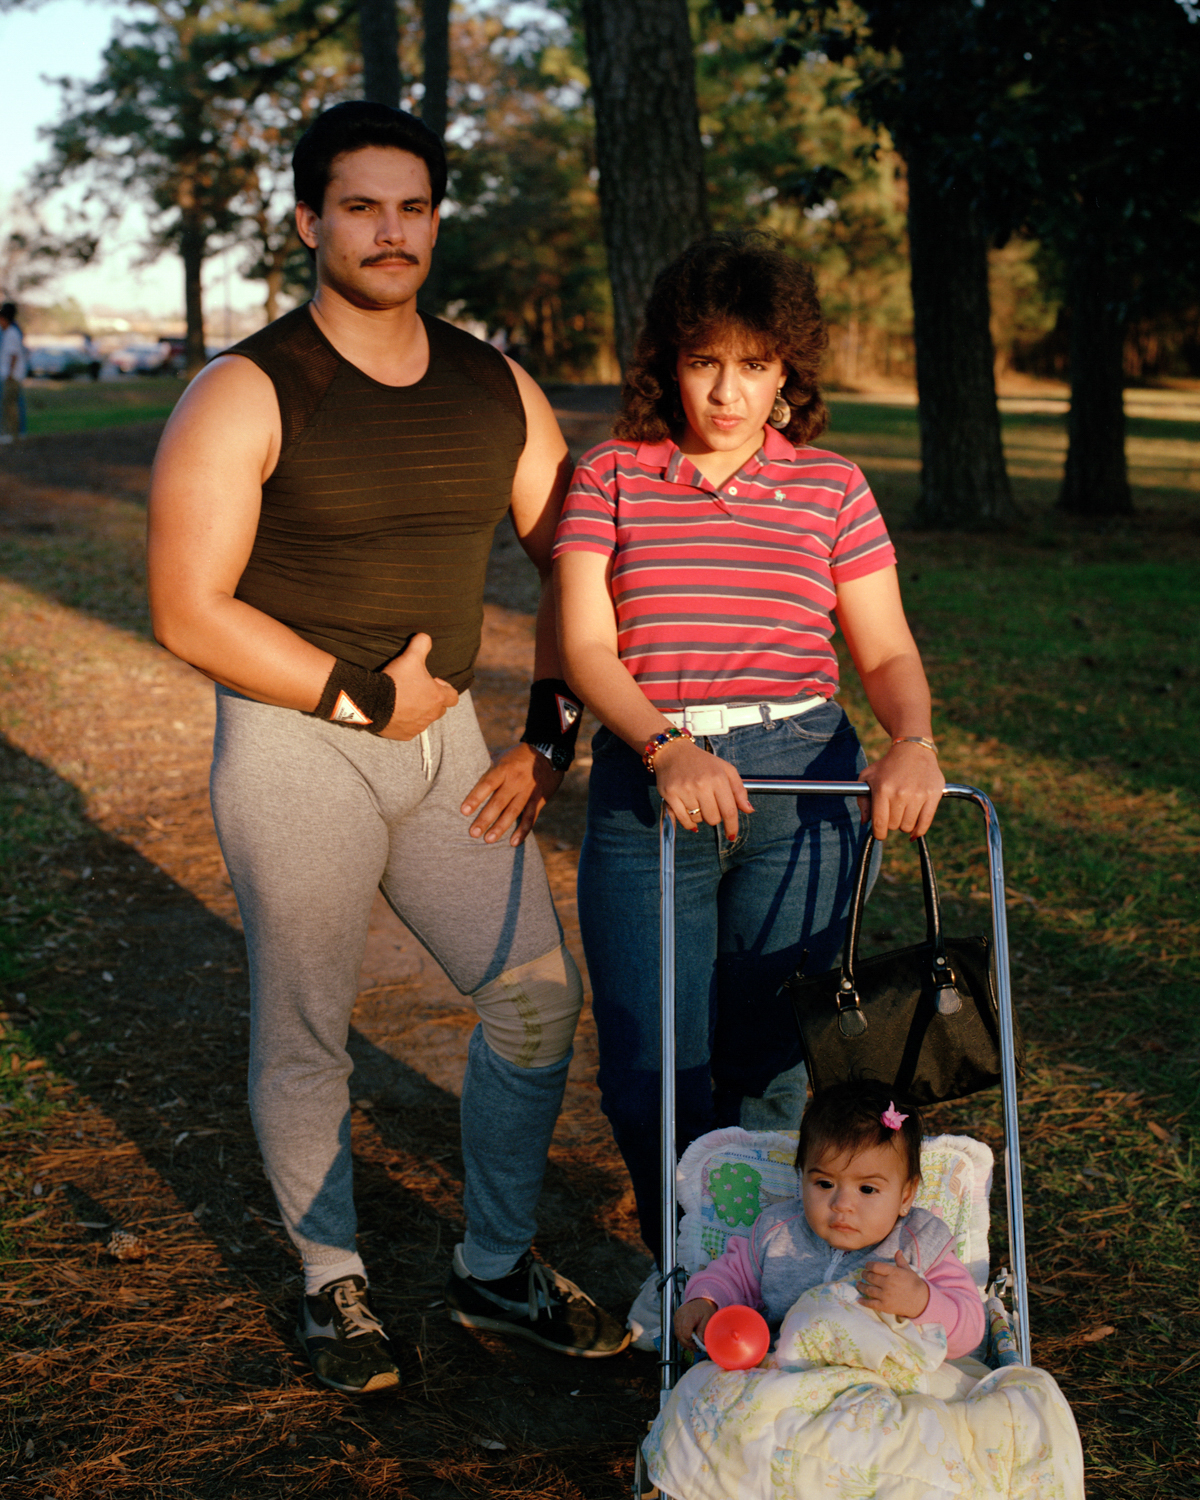 035_028_Couple with Stroller.jpg